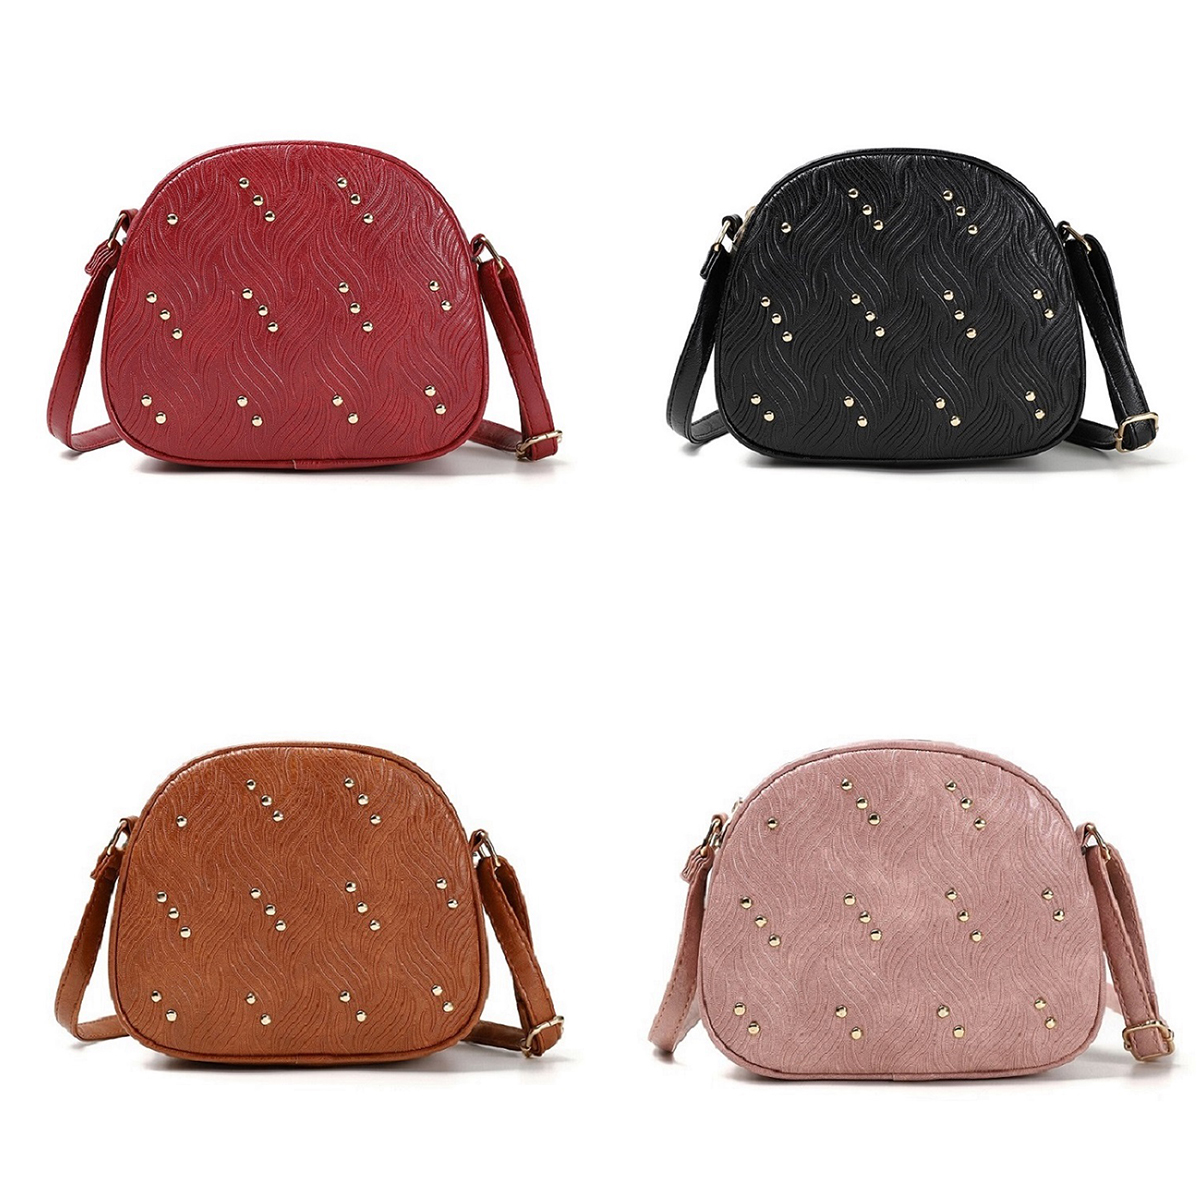 Crossbody Bags For Women Shoulder Bags Female Vintage Leather Bags Women Handbags Famous Brand  PU Leather Rivet Small Ladies